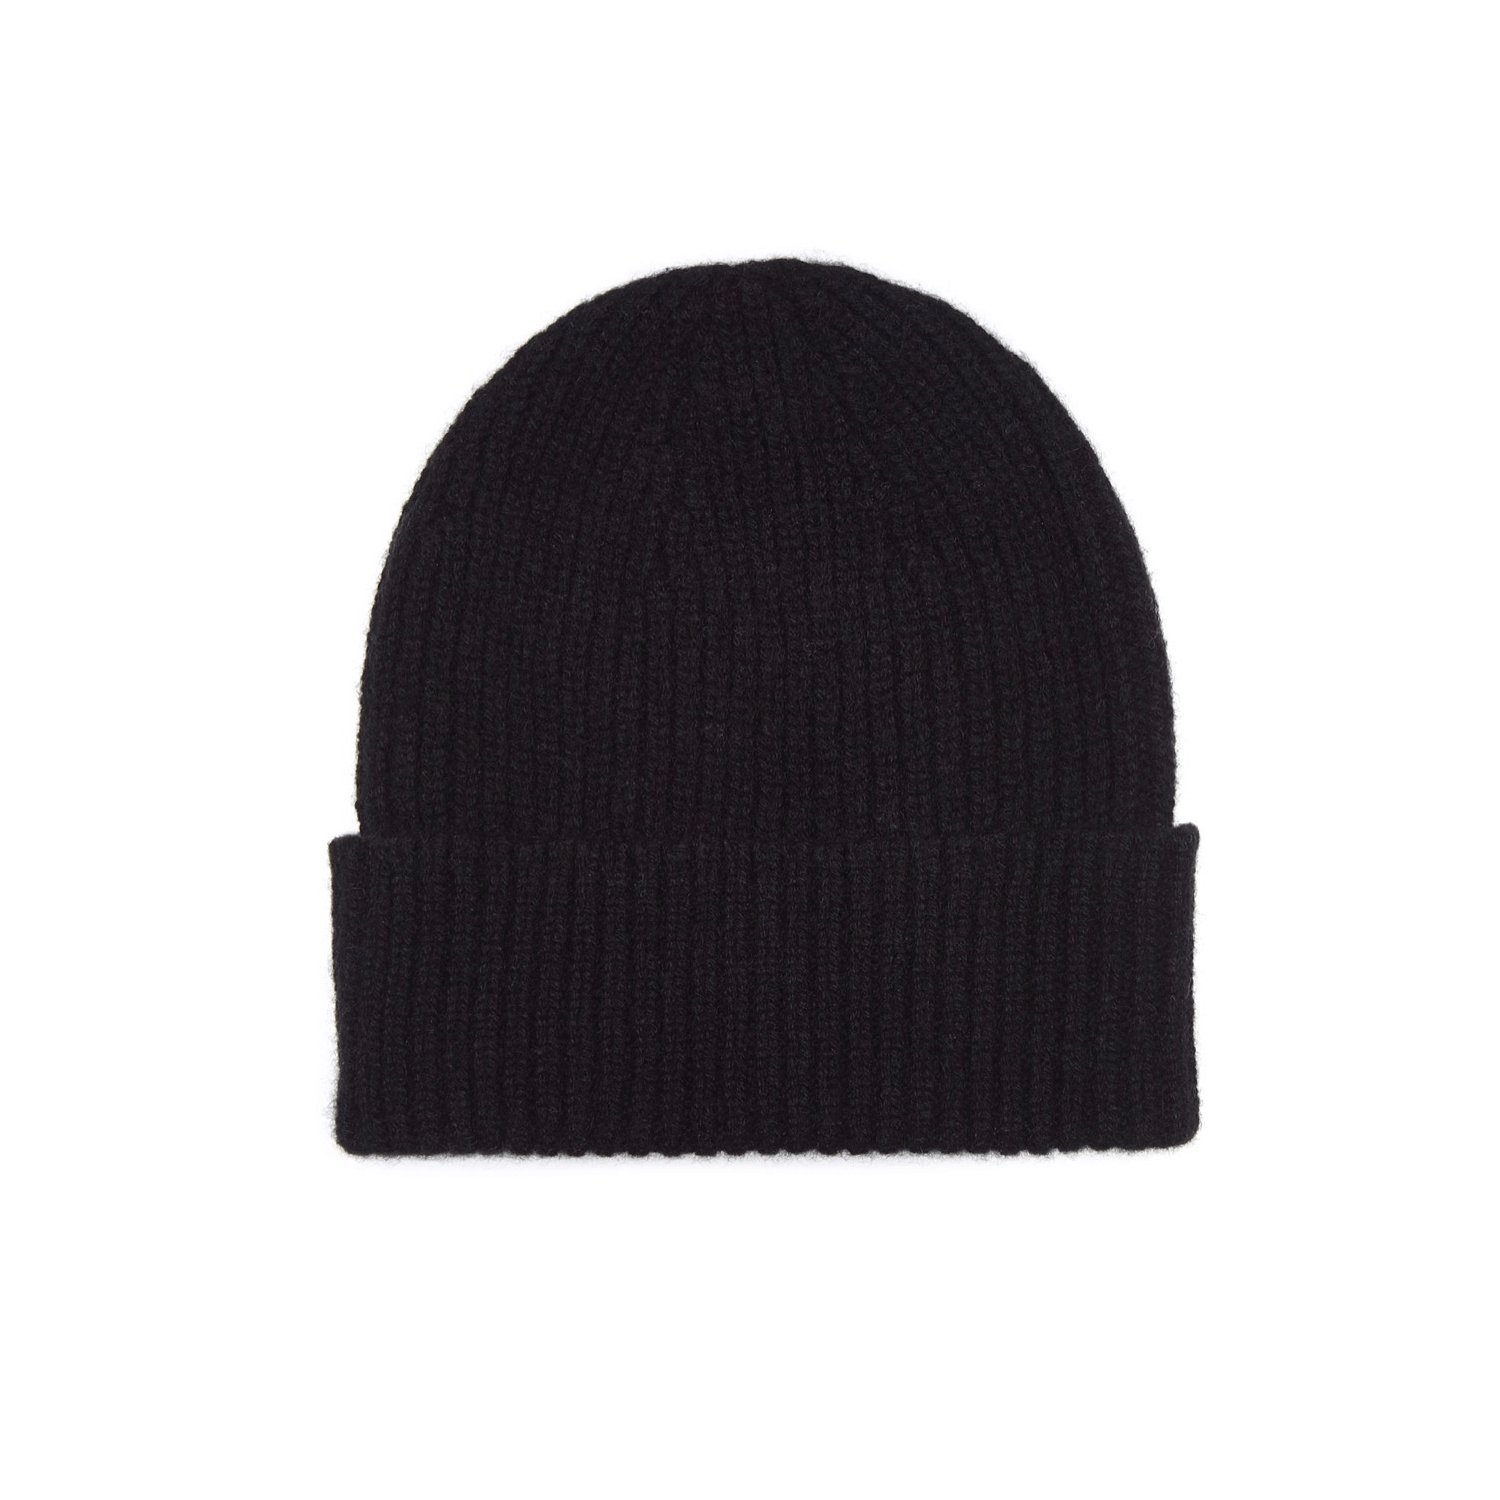 100% Cashmere Beanie Hat in 3ply, Made in Scotland